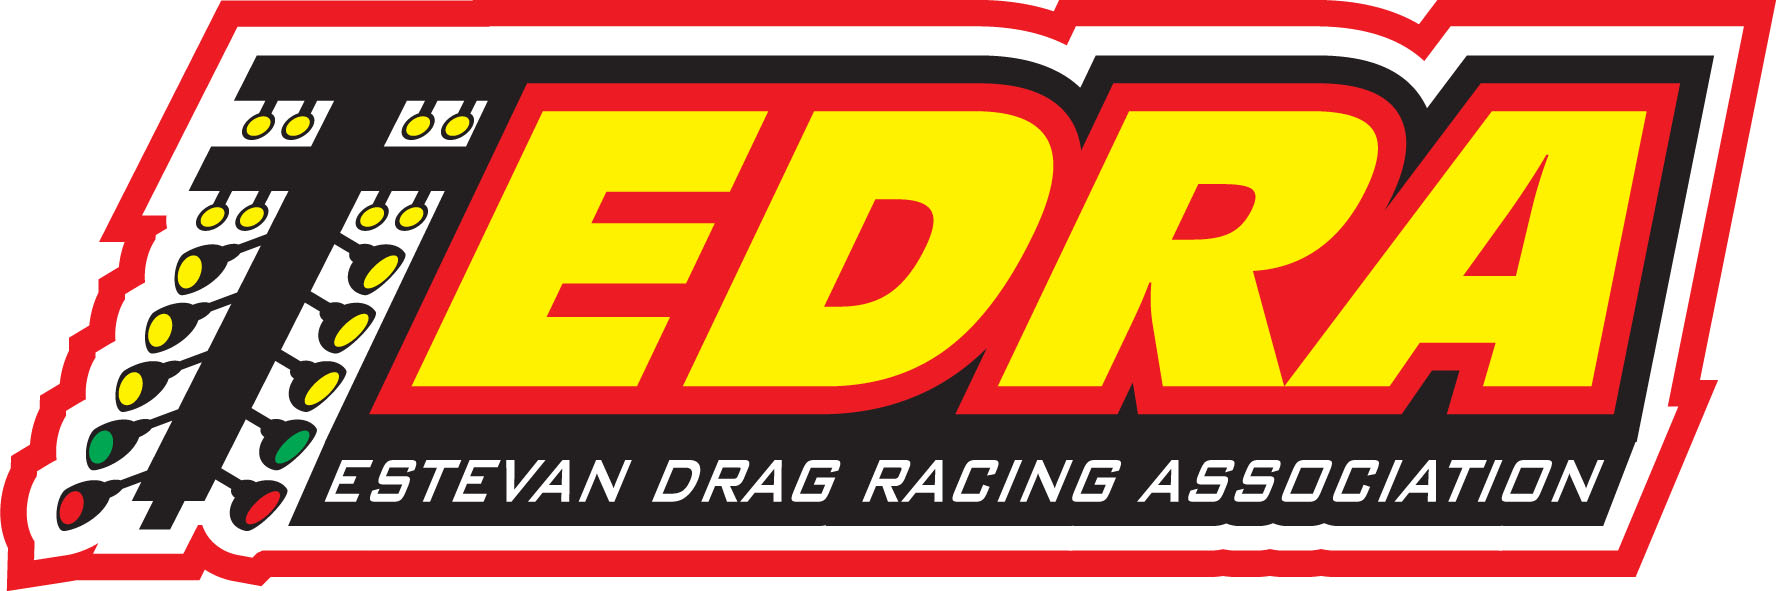 Estevan Drag Racing Association Inc. company